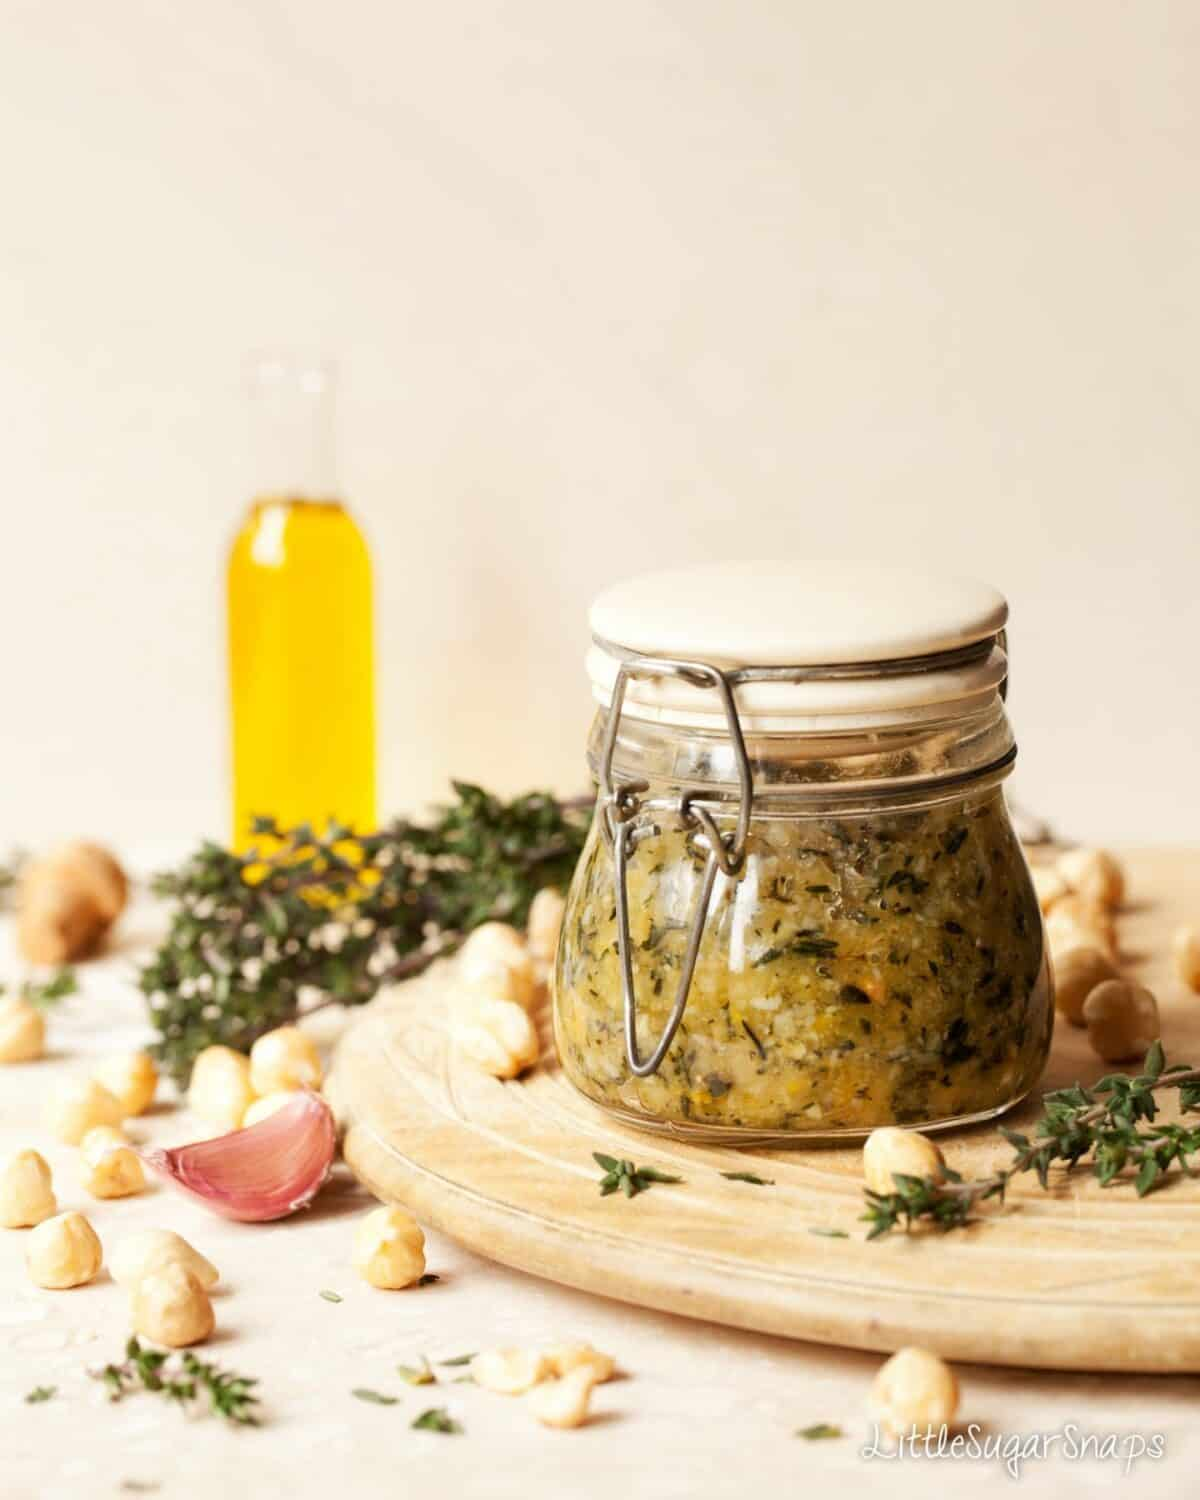 A jar of homemade hazelnut and thyme pesto on a wooden board with ingredients in shot, including garlic, olive oil, hazelnuts and fresh thyme